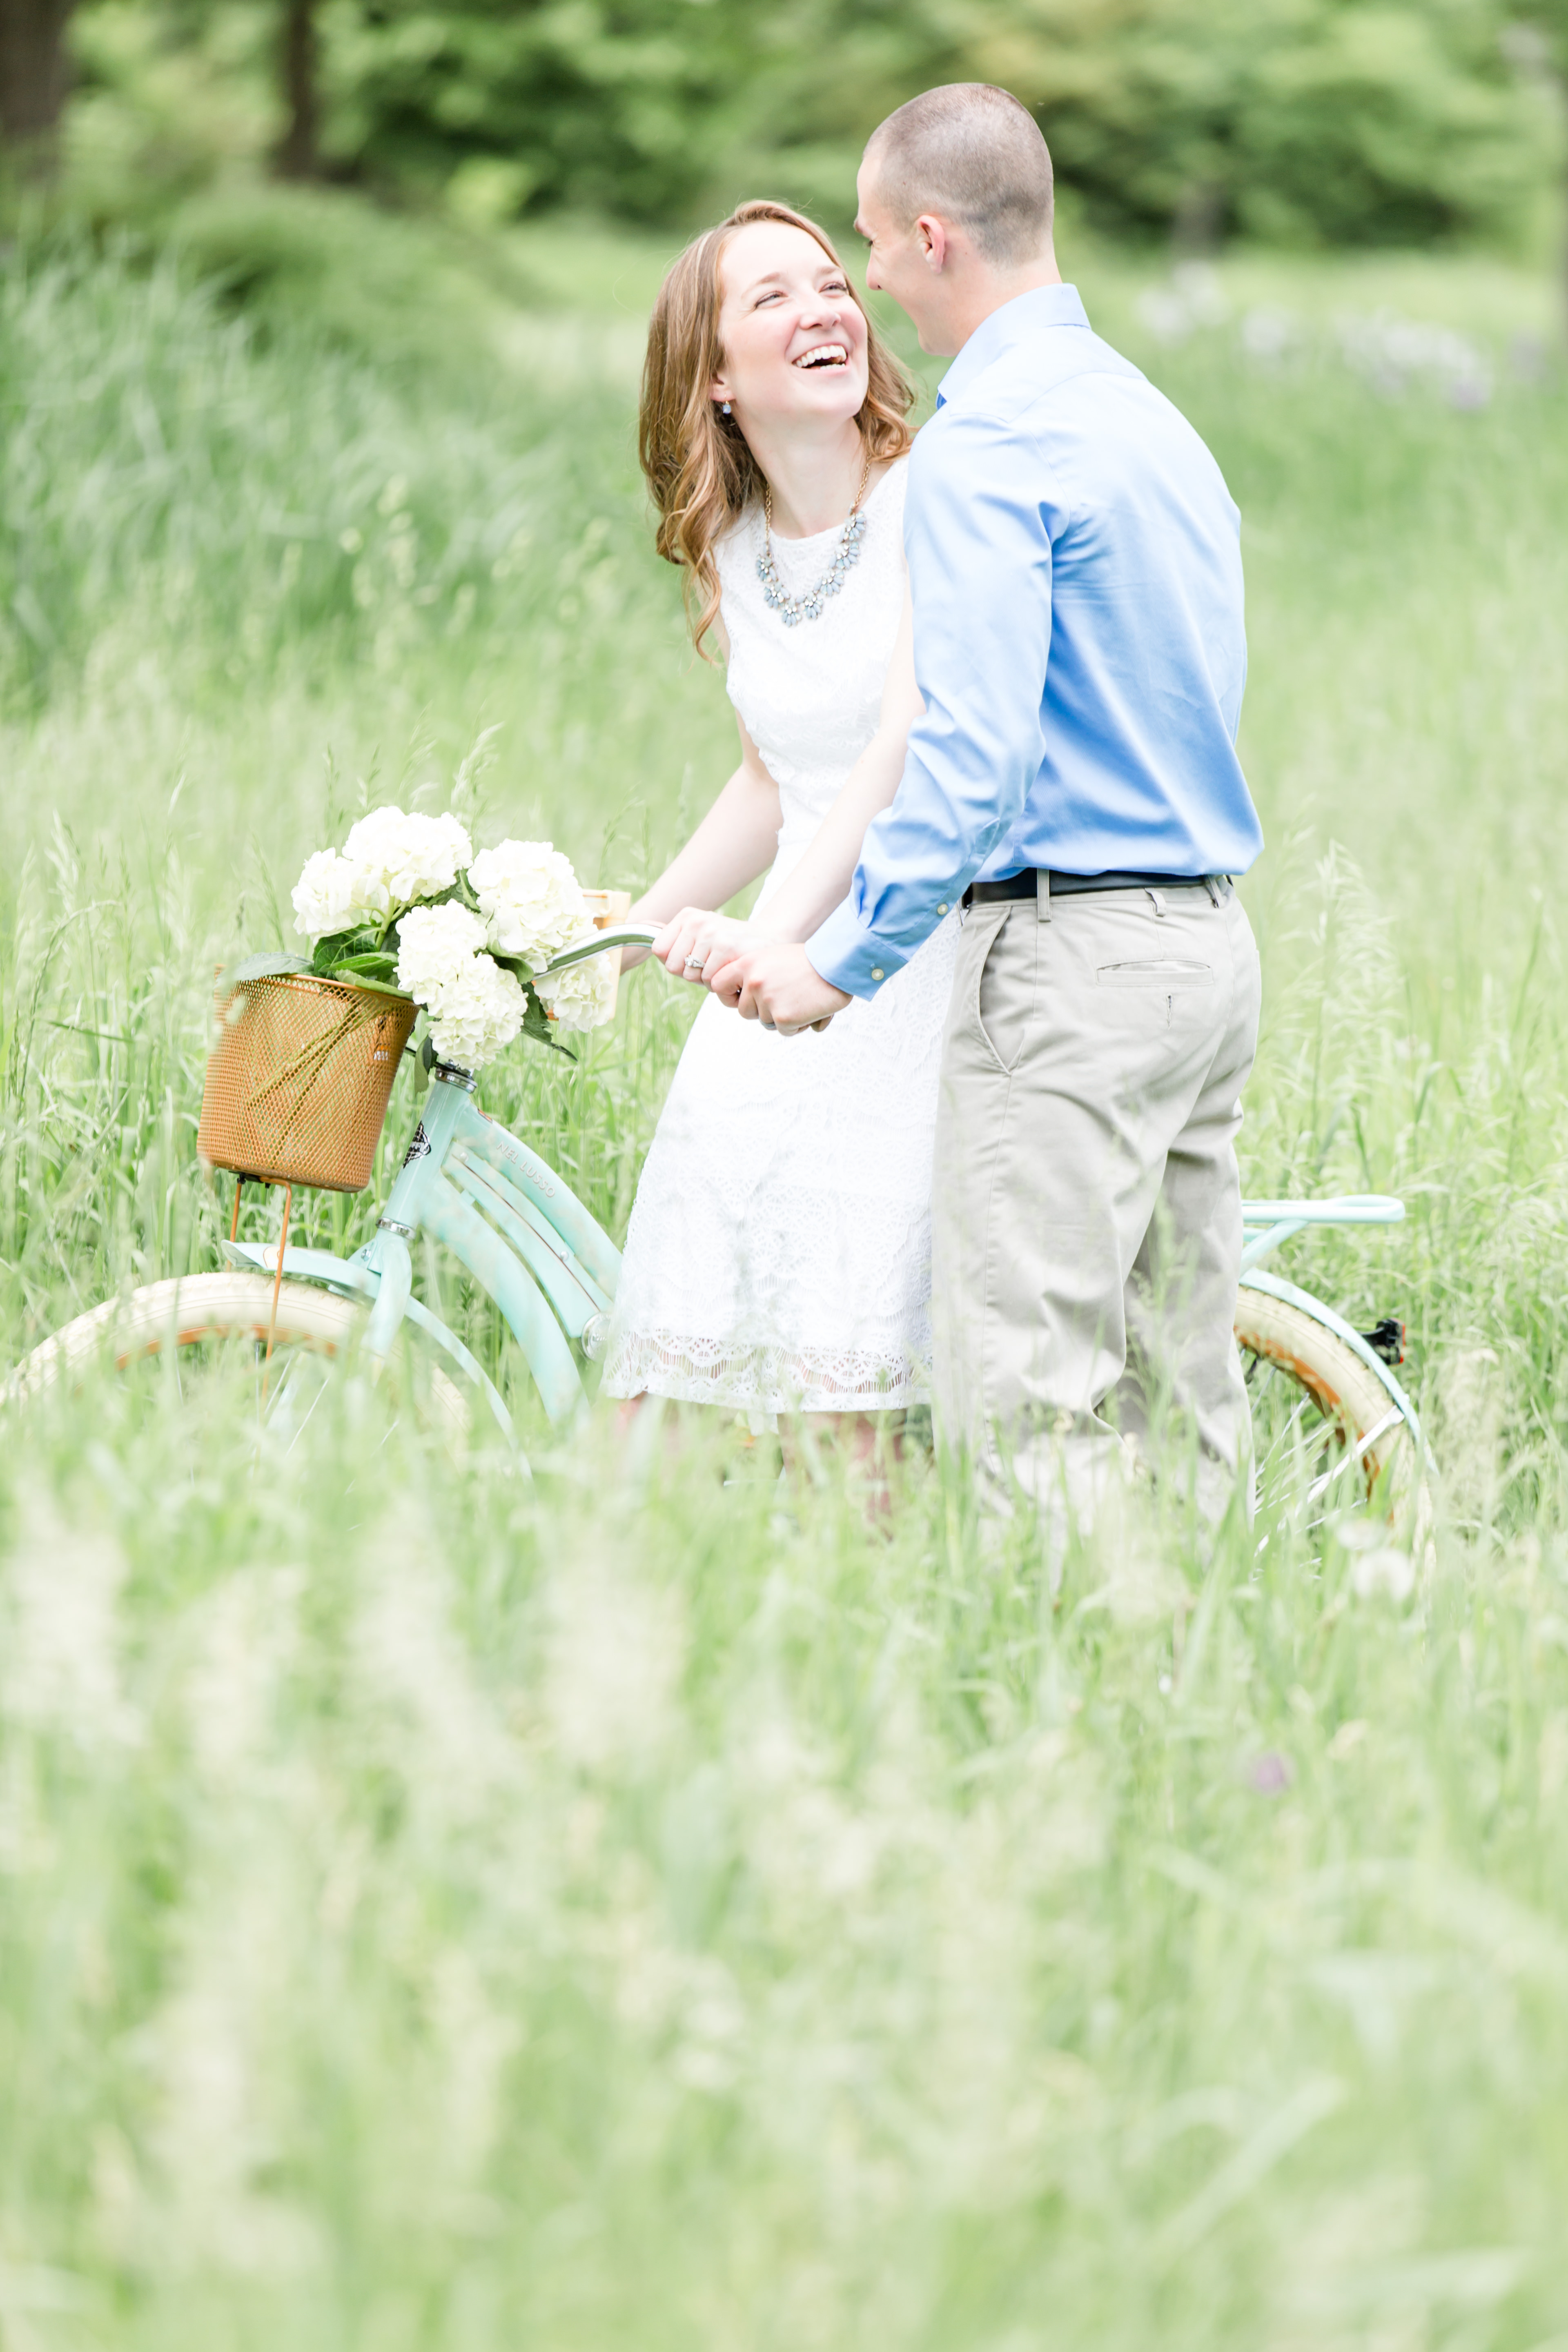 Engagement photo at Millbrook Marsh State College with mint bike and hydrangeas